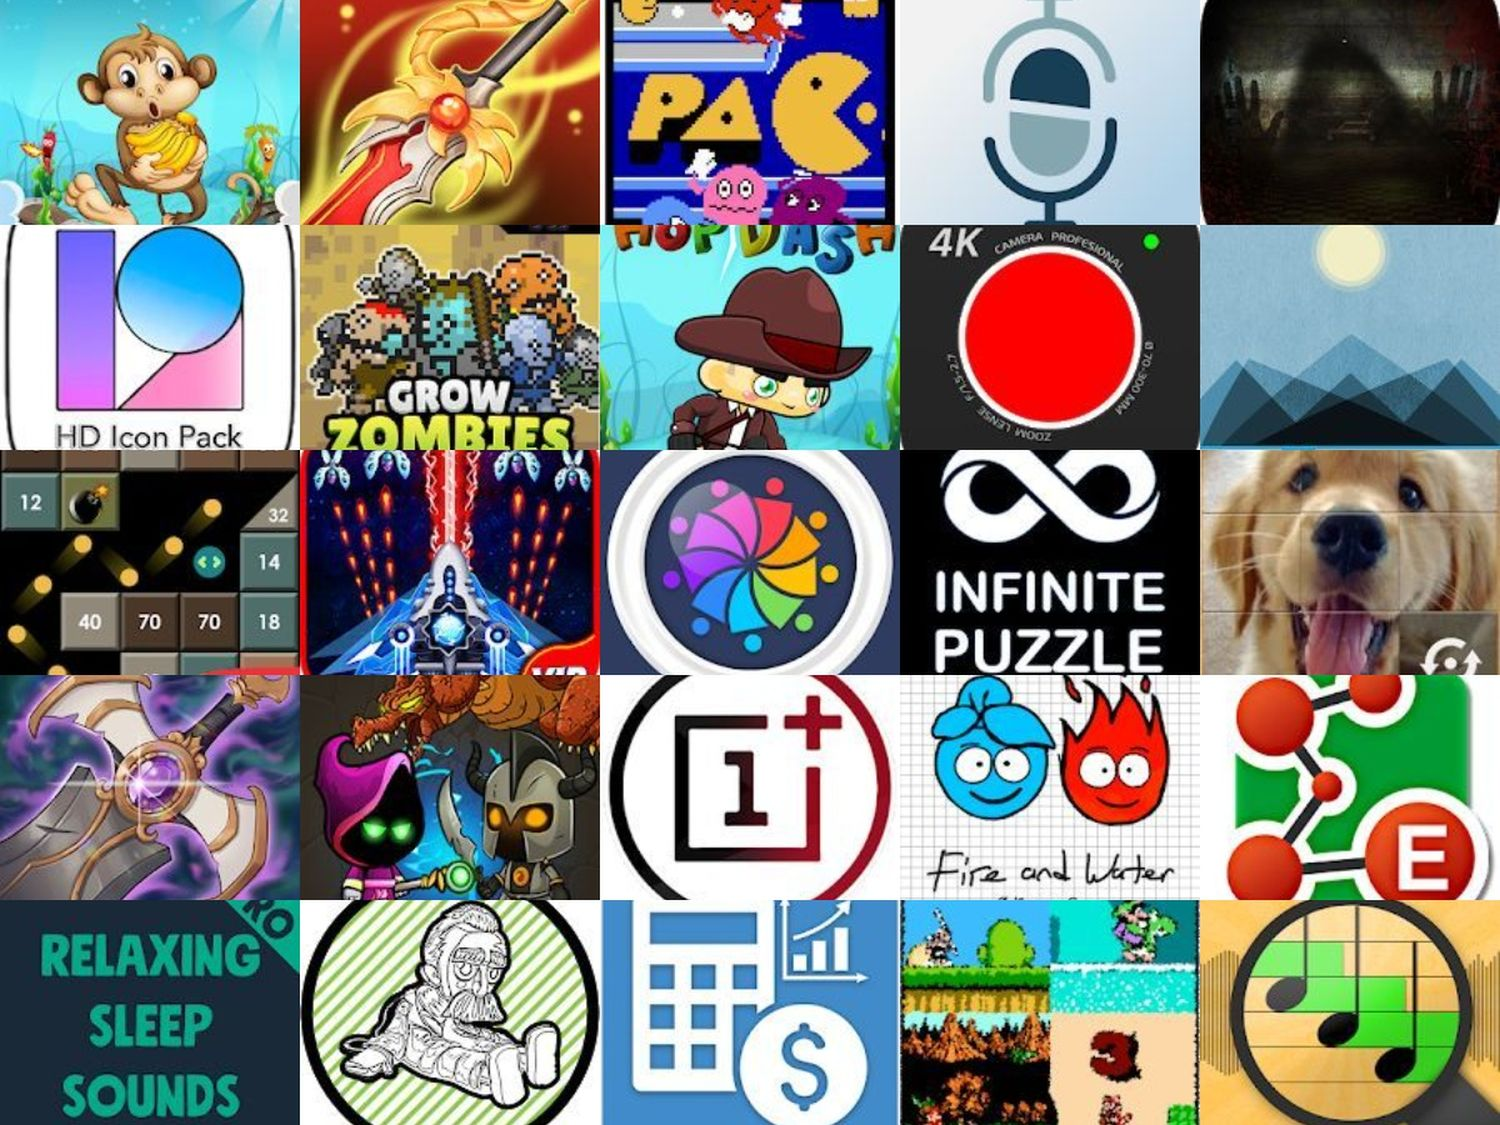 apps 01.06.2021